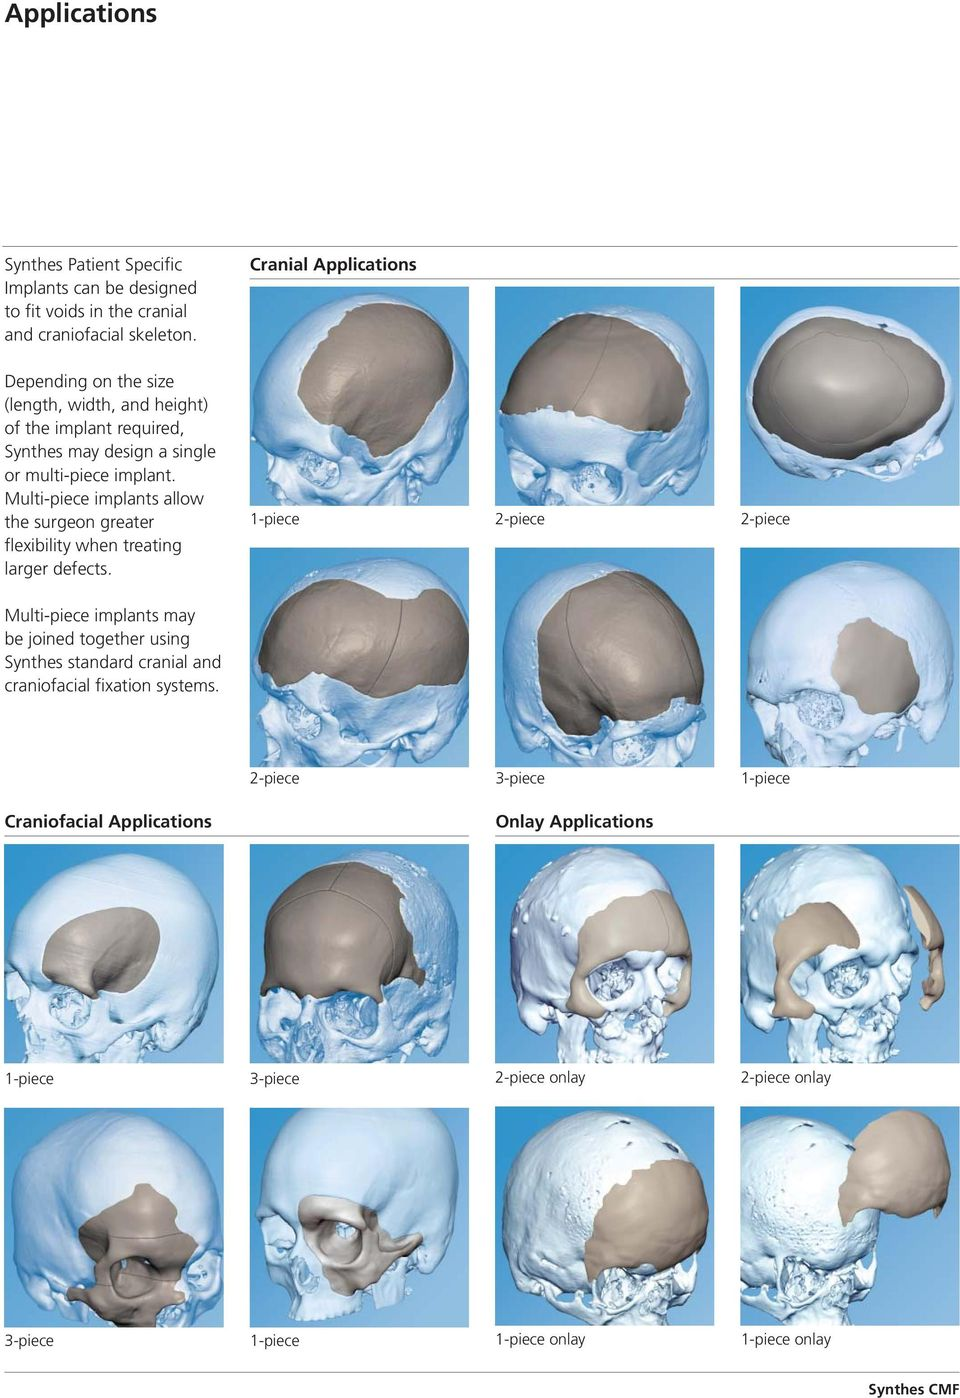 Multi-piece implants allow the surgeon greater flexibility when treating larger defects.